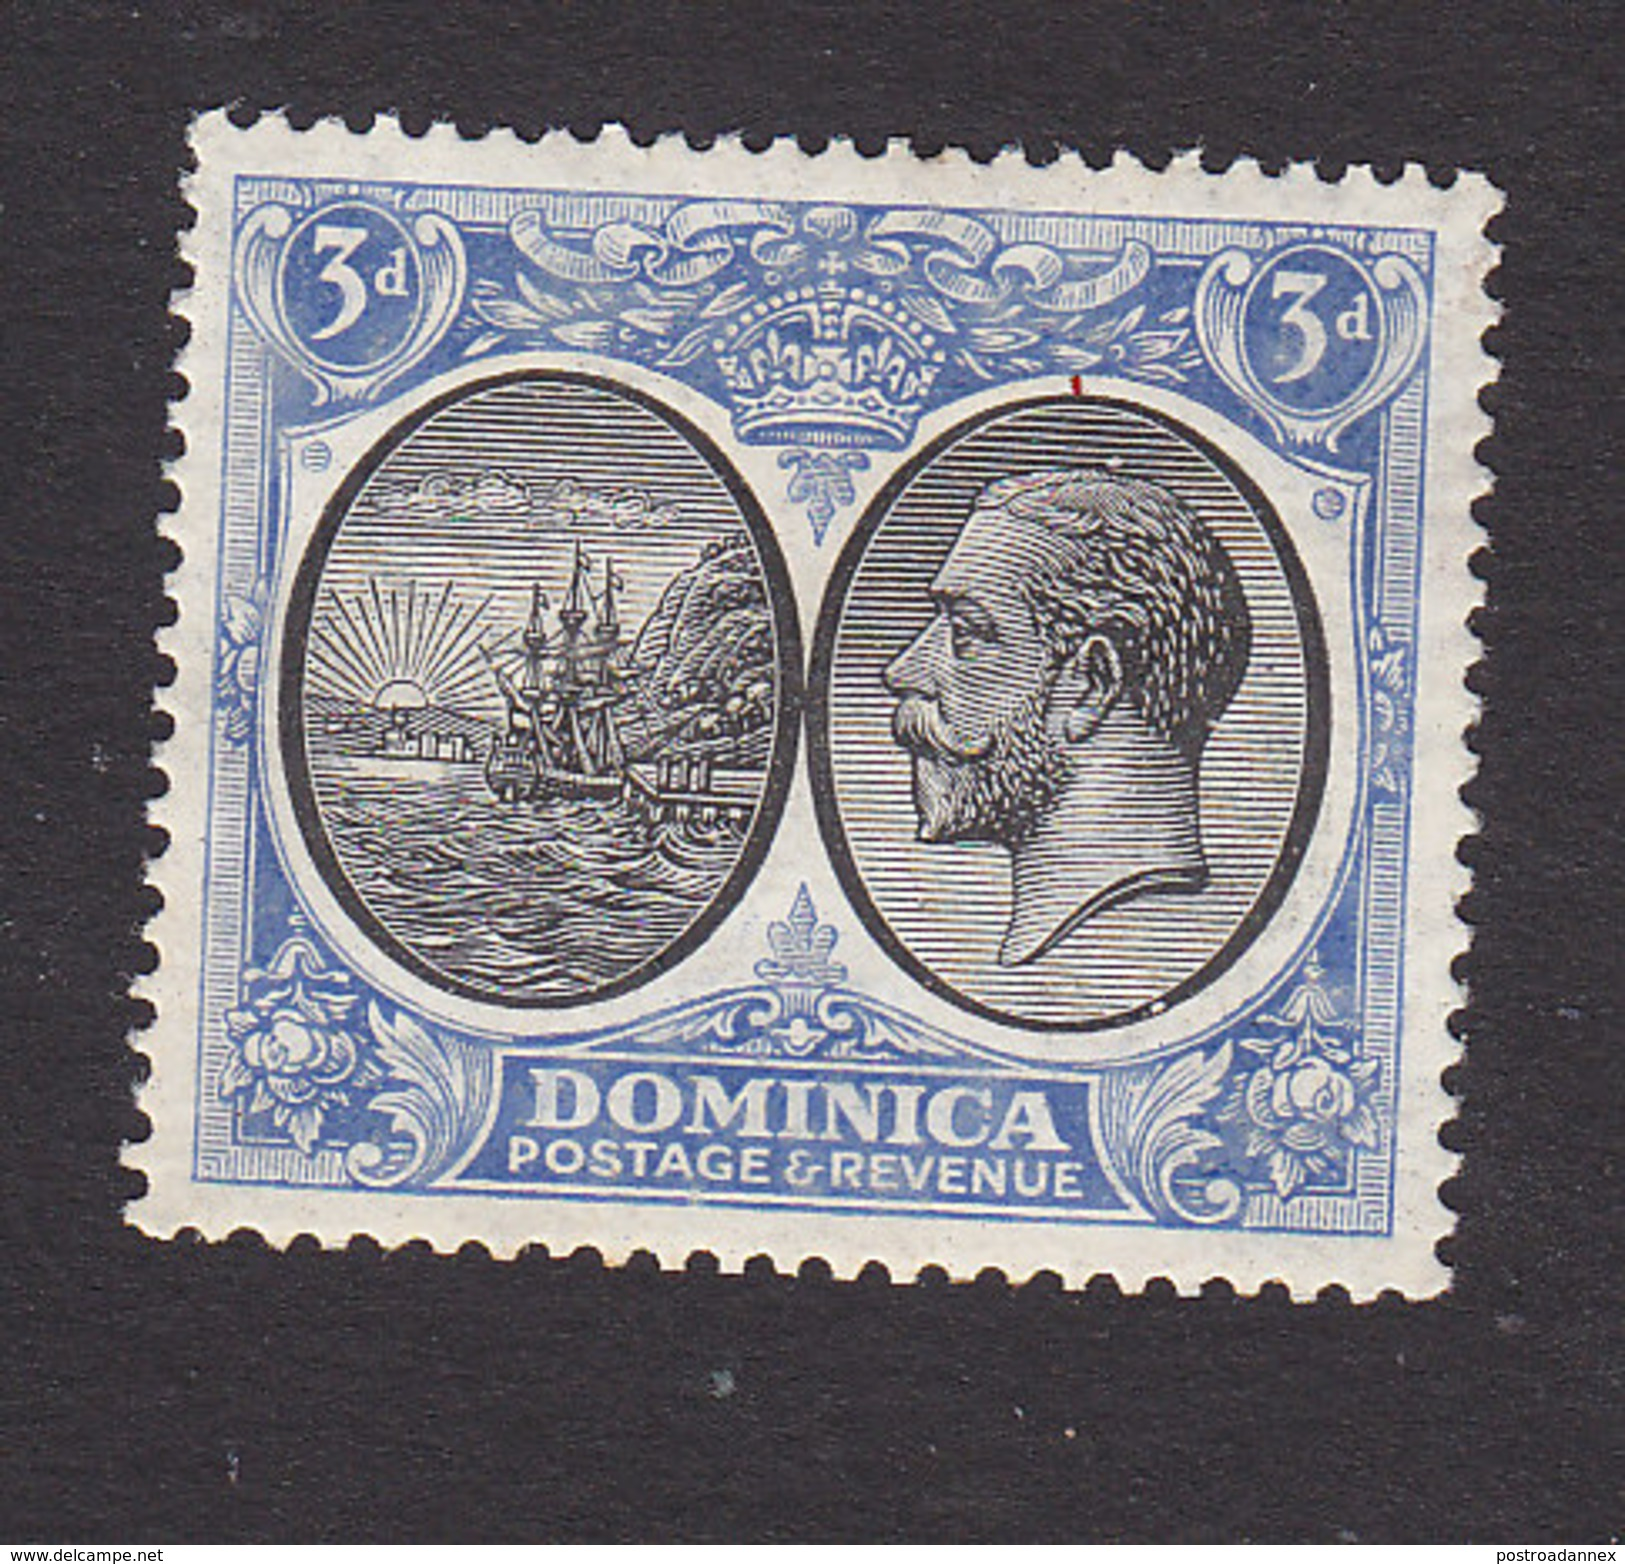 Dominica, Scott #73, Mint Hinged, Seal Of The Colony, George V, Issued 1923 - Dominica (...-1978)